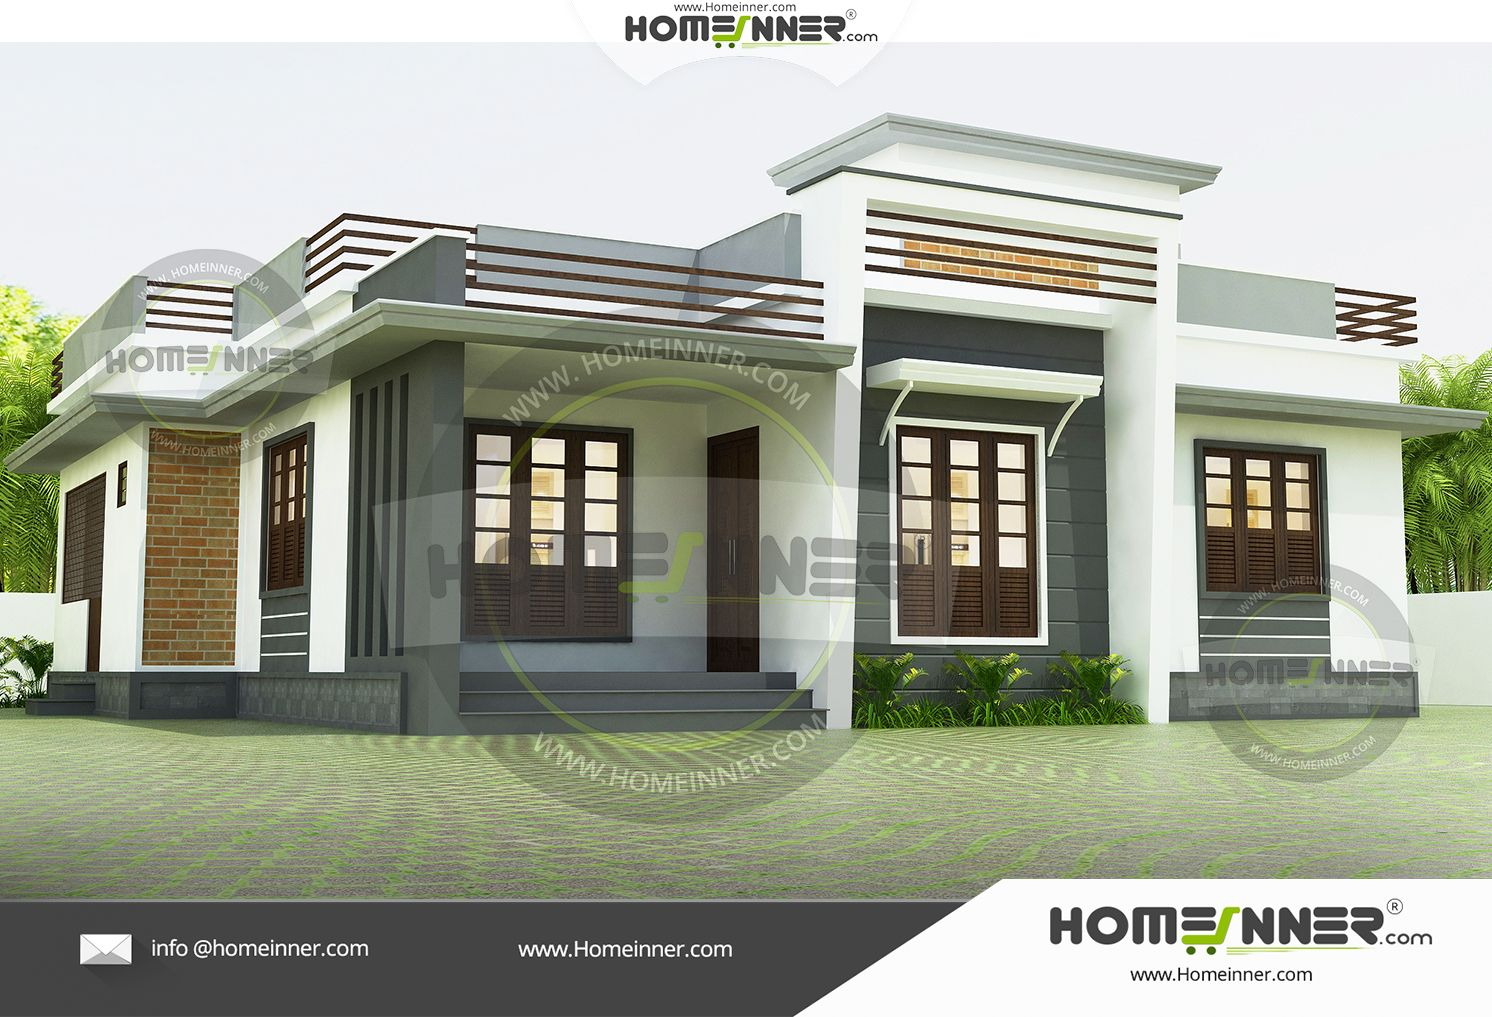 HIND 9011 Bedroom SmallContemporary House PlansModern